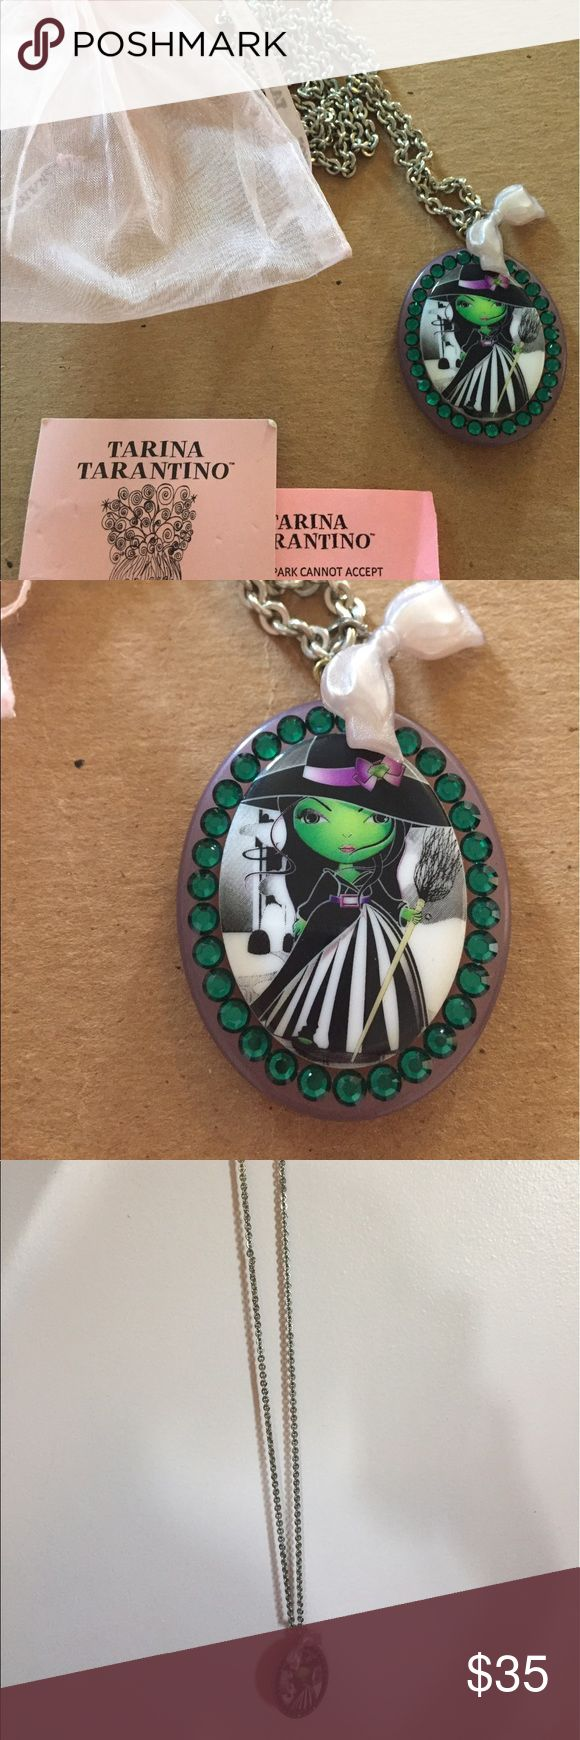 Tarina Tarantino Wicked Witch Necklace Tarina Tarantino Wicked Witch of the West Wizard of Oz necklace. Very long chain, lightly worn. Comes with original information card and pouch. Tarina Tarantino Jewelry Necklaces